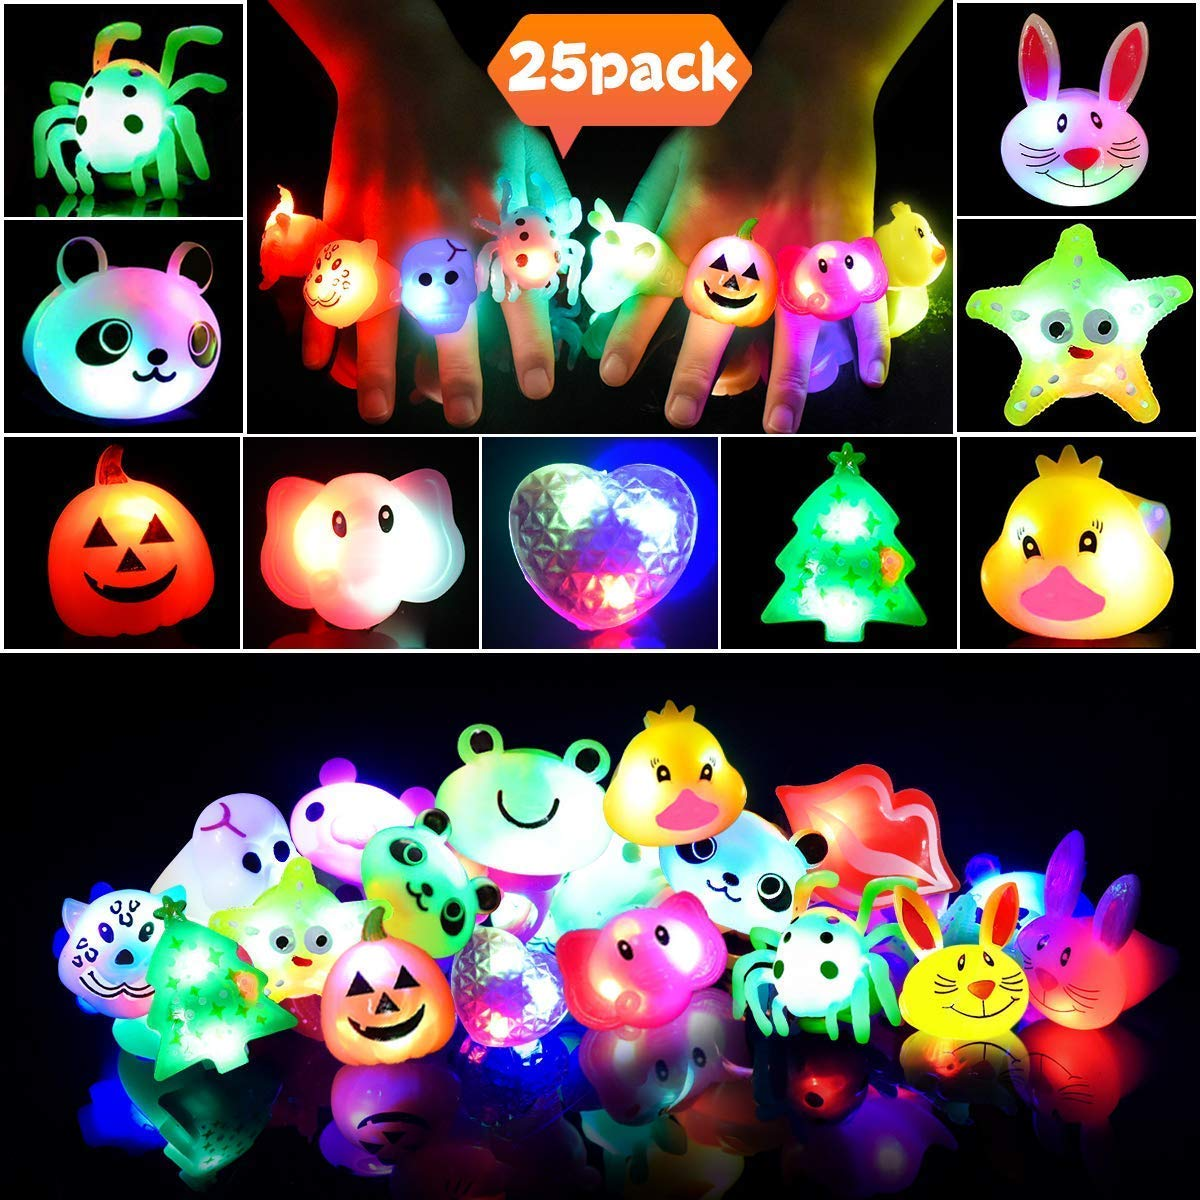 LEEHUR Led Party Favors Rings for Kids 25pcs Light Up Glow in the Dark Bling Jelly Flashing Ring for Girls Birthday Class Prizes Halloween Christmas Party Supplies Gift by LEEHUR